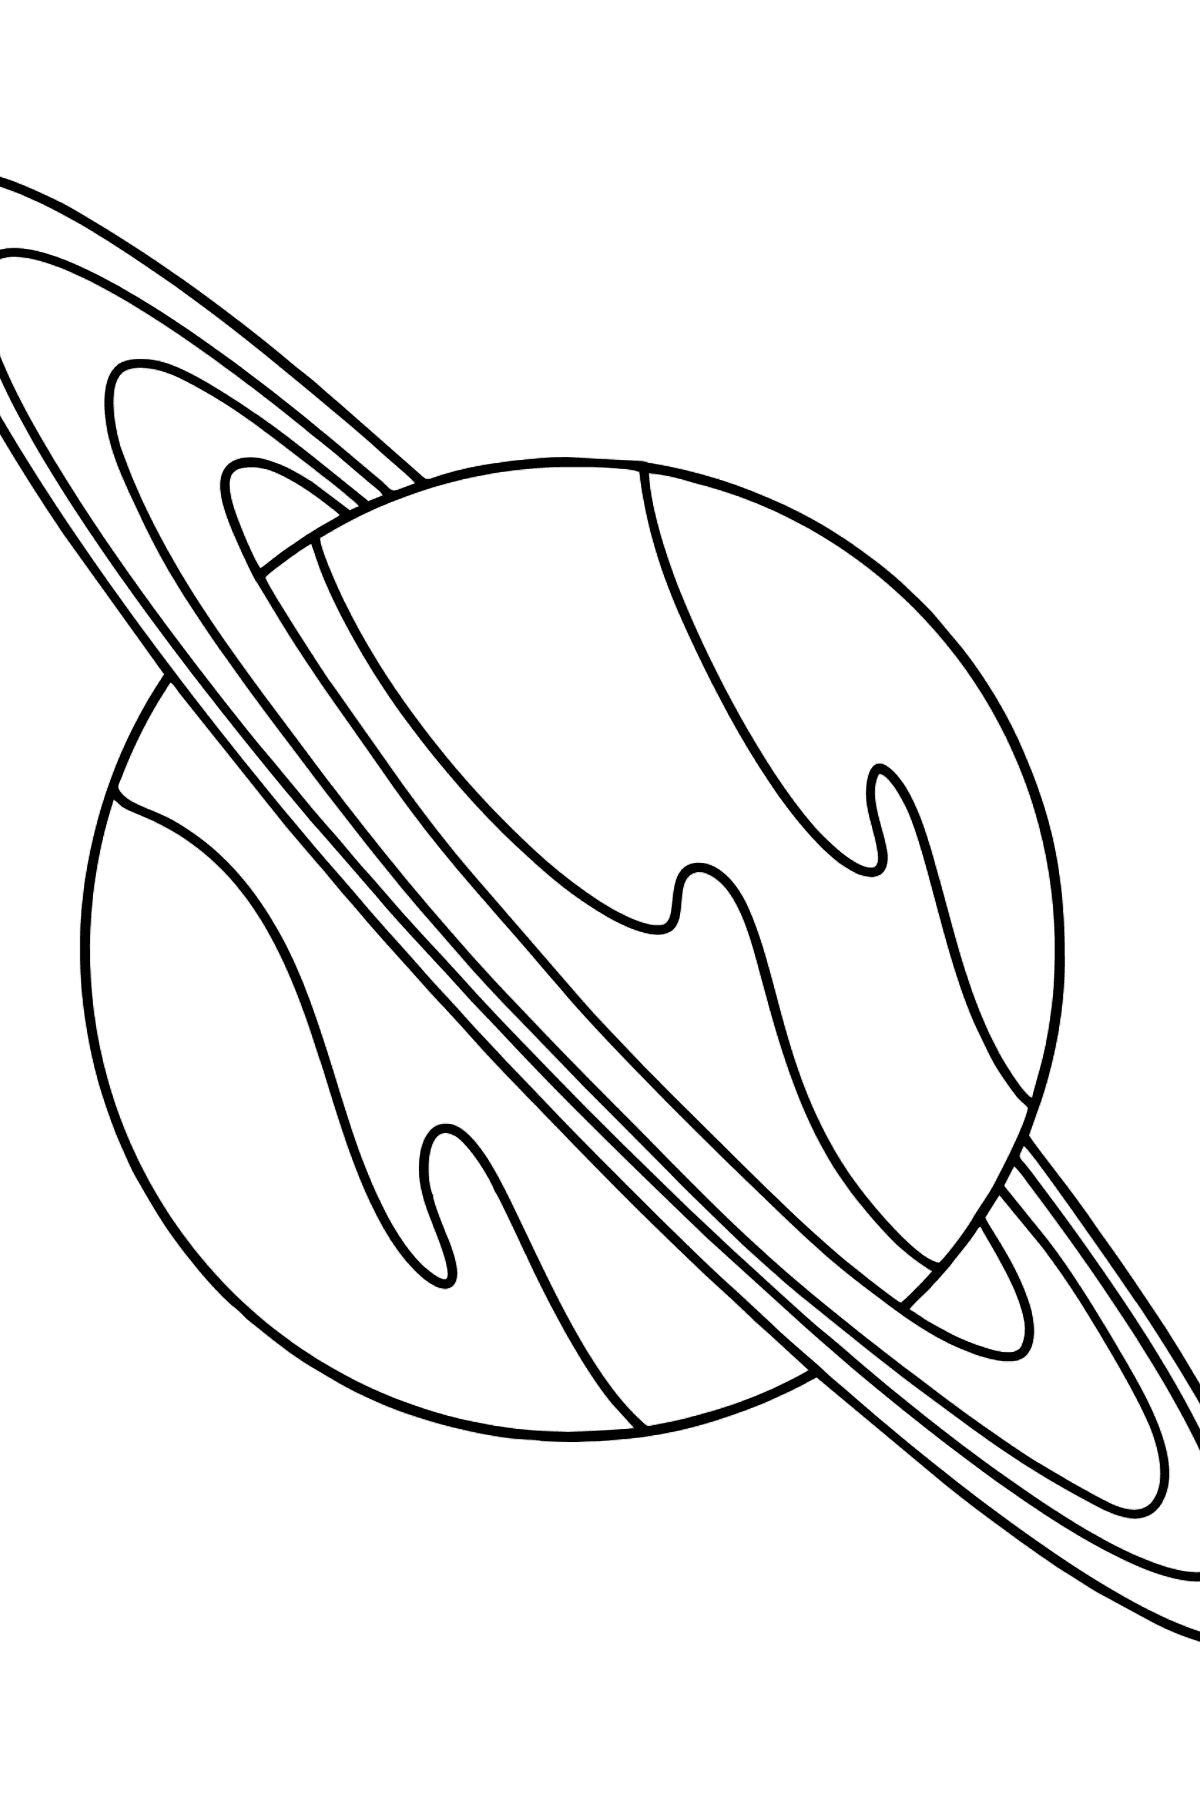 Saturn coloring page - Coloring Pages for Kids